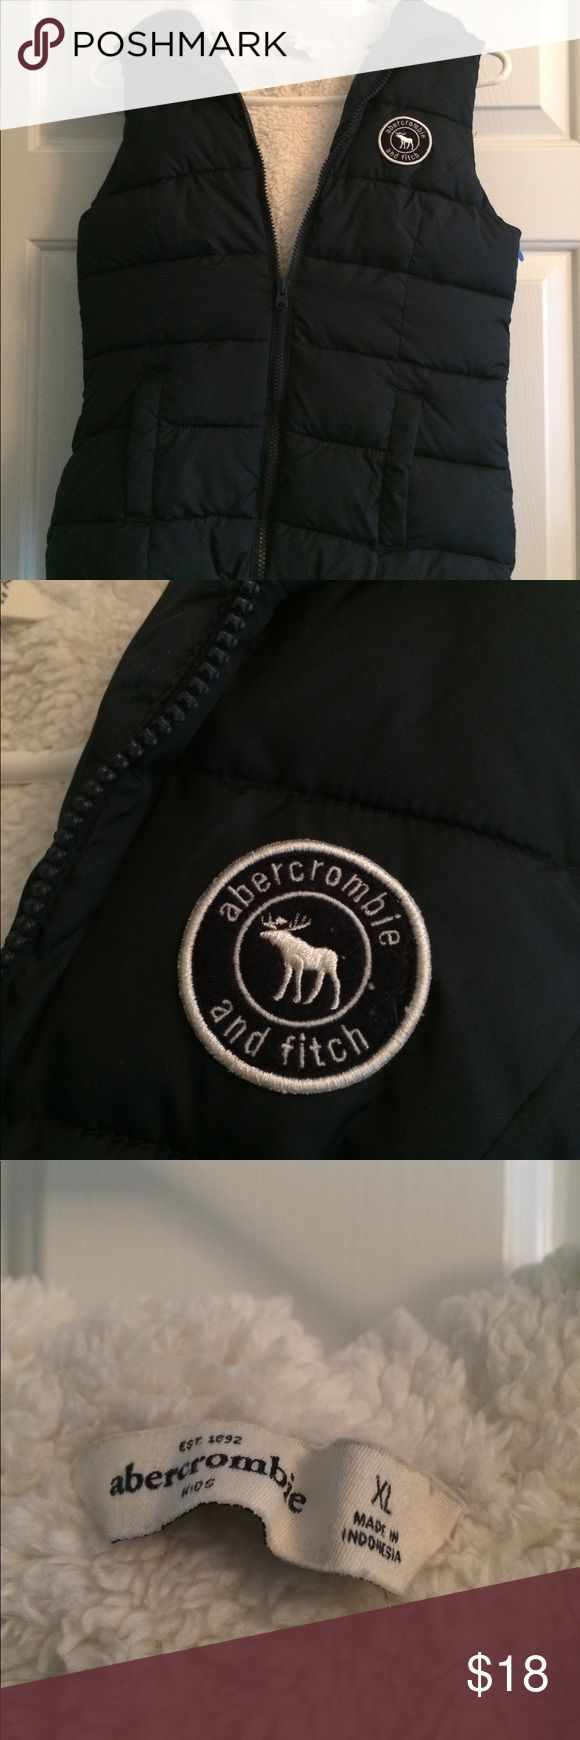 Abercrombie girls navy hooded puffer vest Size xl Abercrombie girls navy faux fur lined puffer vest with hood. Excellent condition! Abercrombie & Fitch Jackets & Coats Vests